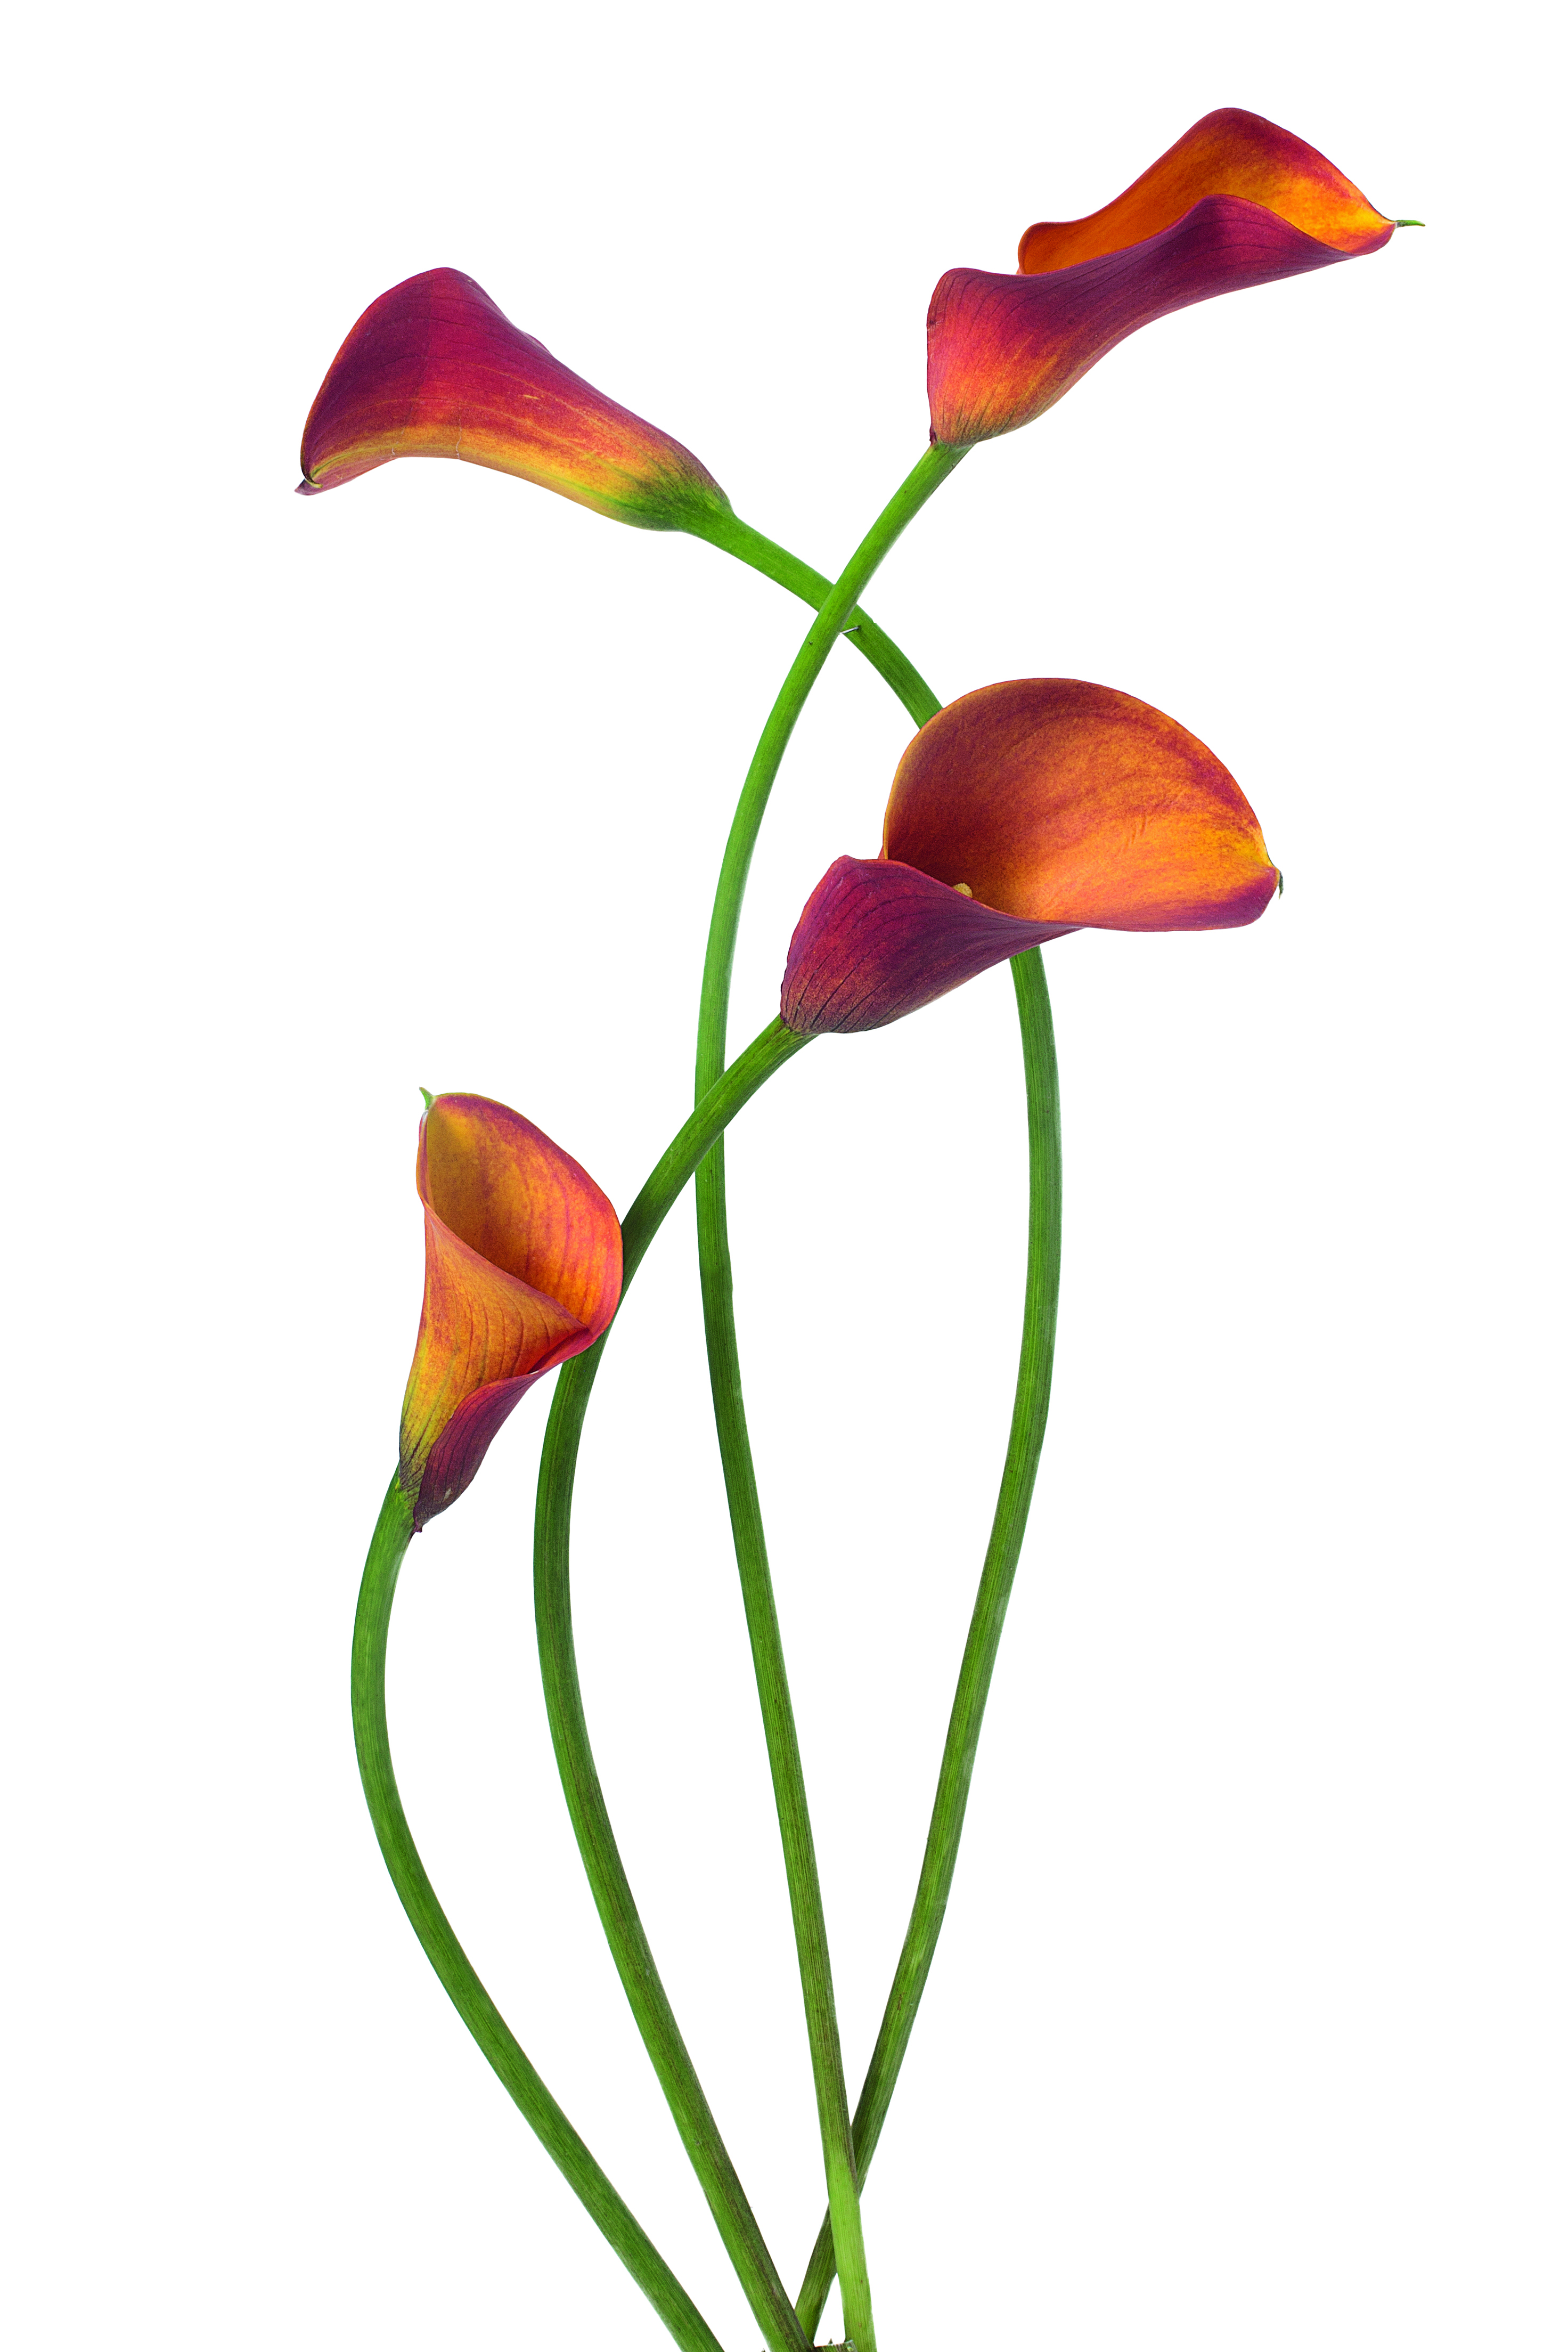 Calla lilies from The Flower Colour Guide